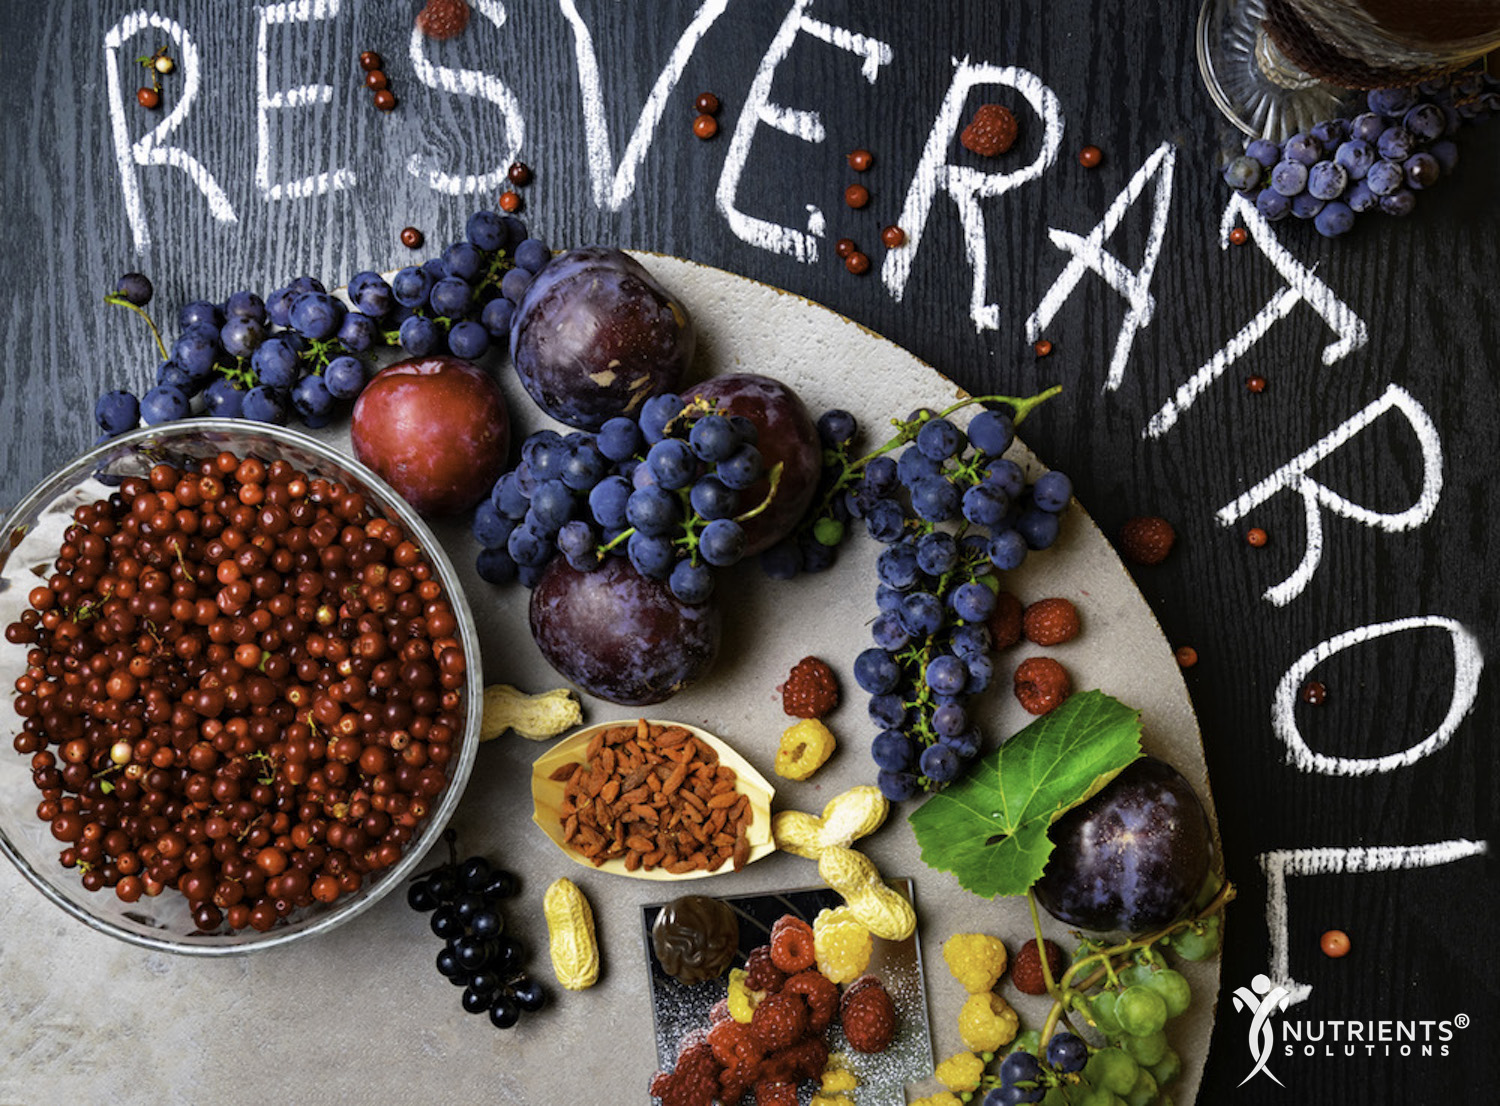 Resveratrol 11 Benefits Of The Medicinal Polyphenol From Red Wine